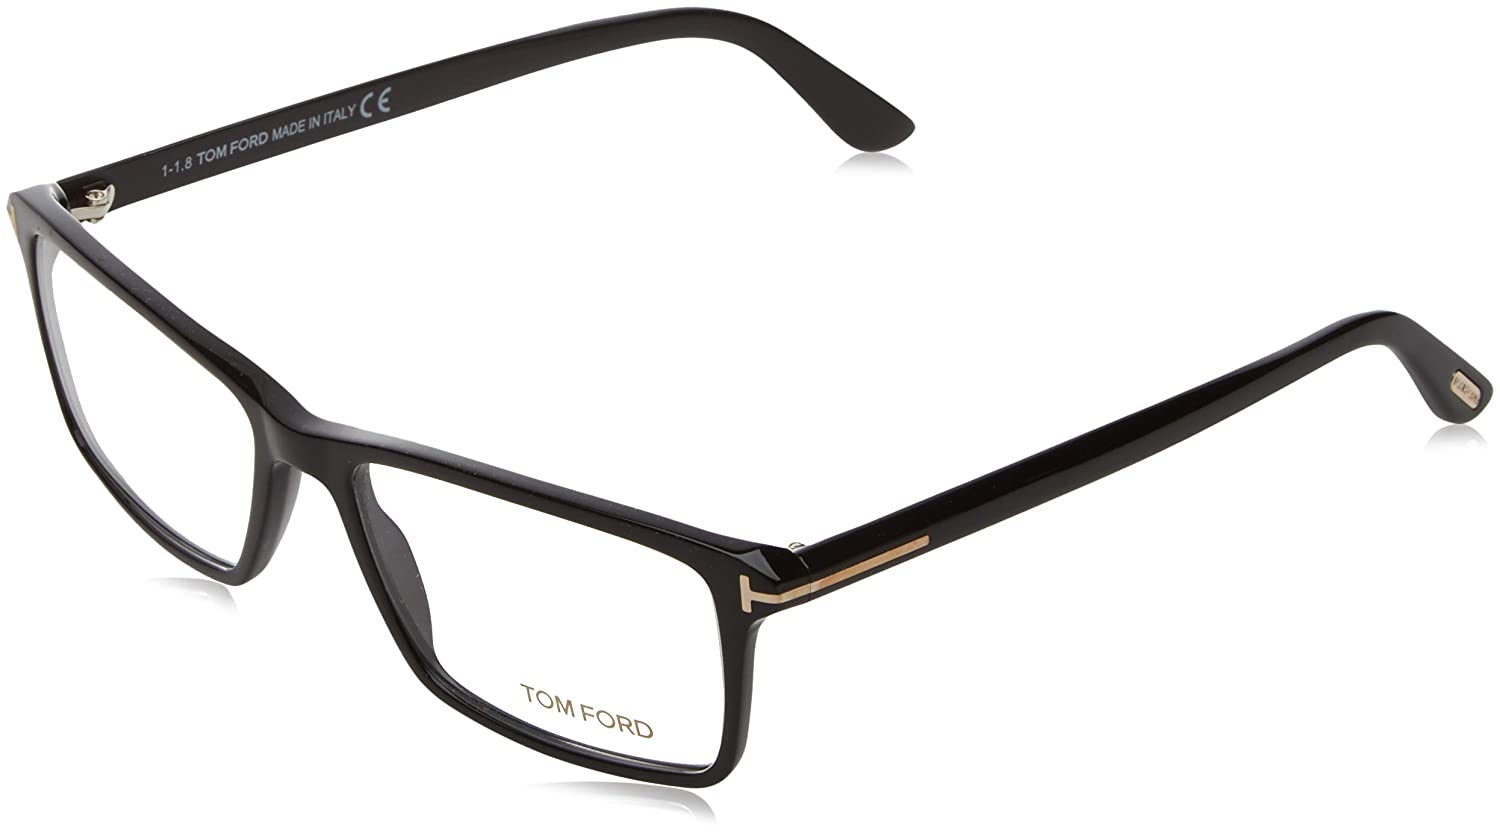 b4051ec79e TOM FORD Men s TF 5408 001 Black Clear Rectangular Eyeglasses 56mm ...